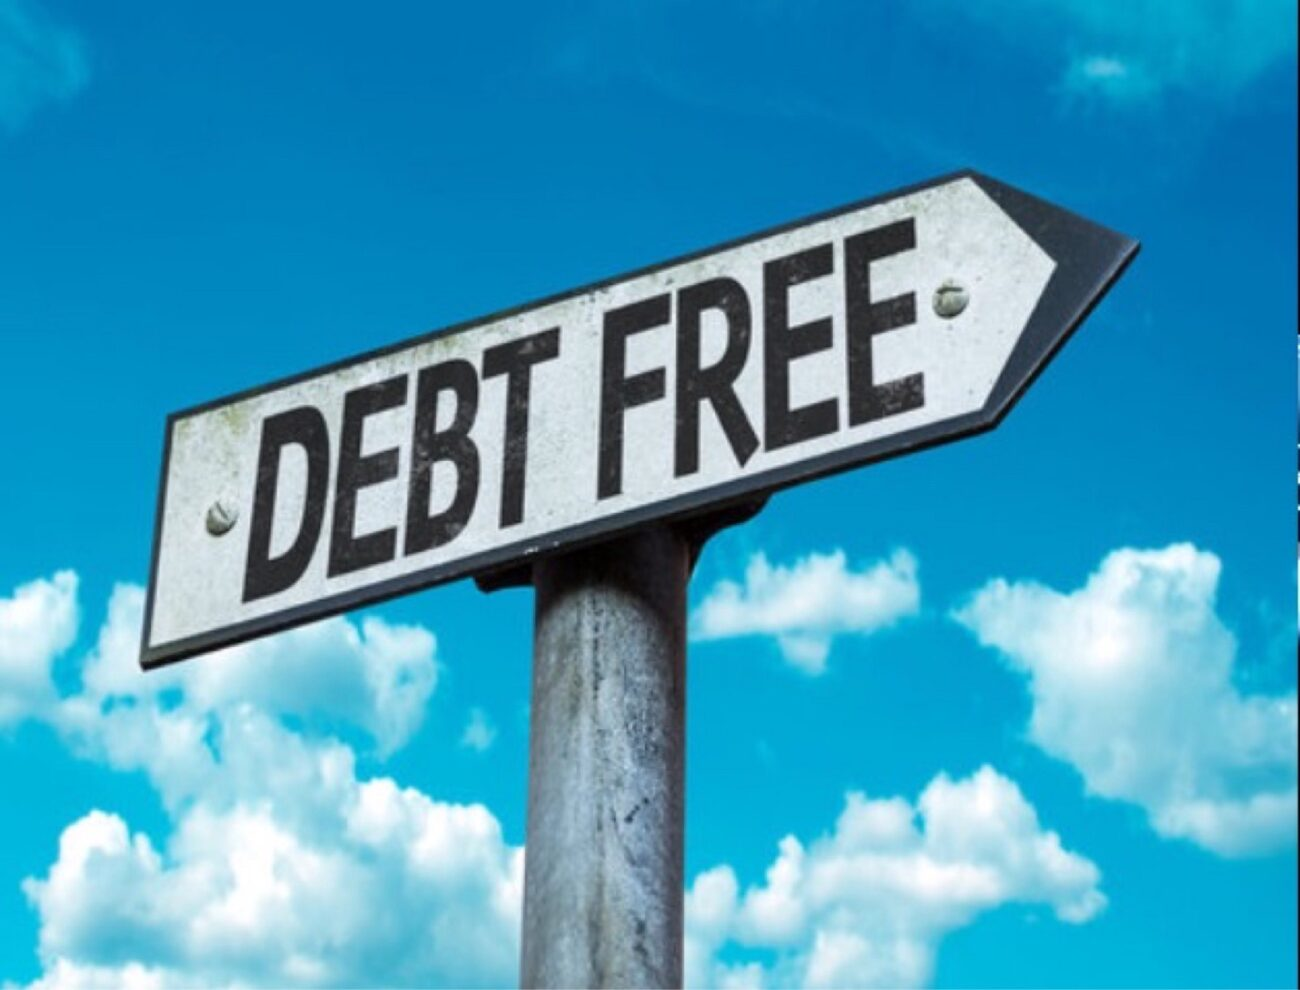 If you want to live a debt-free life, you have to maintain your revenue and expenses. Here are some trustworthy techniques.